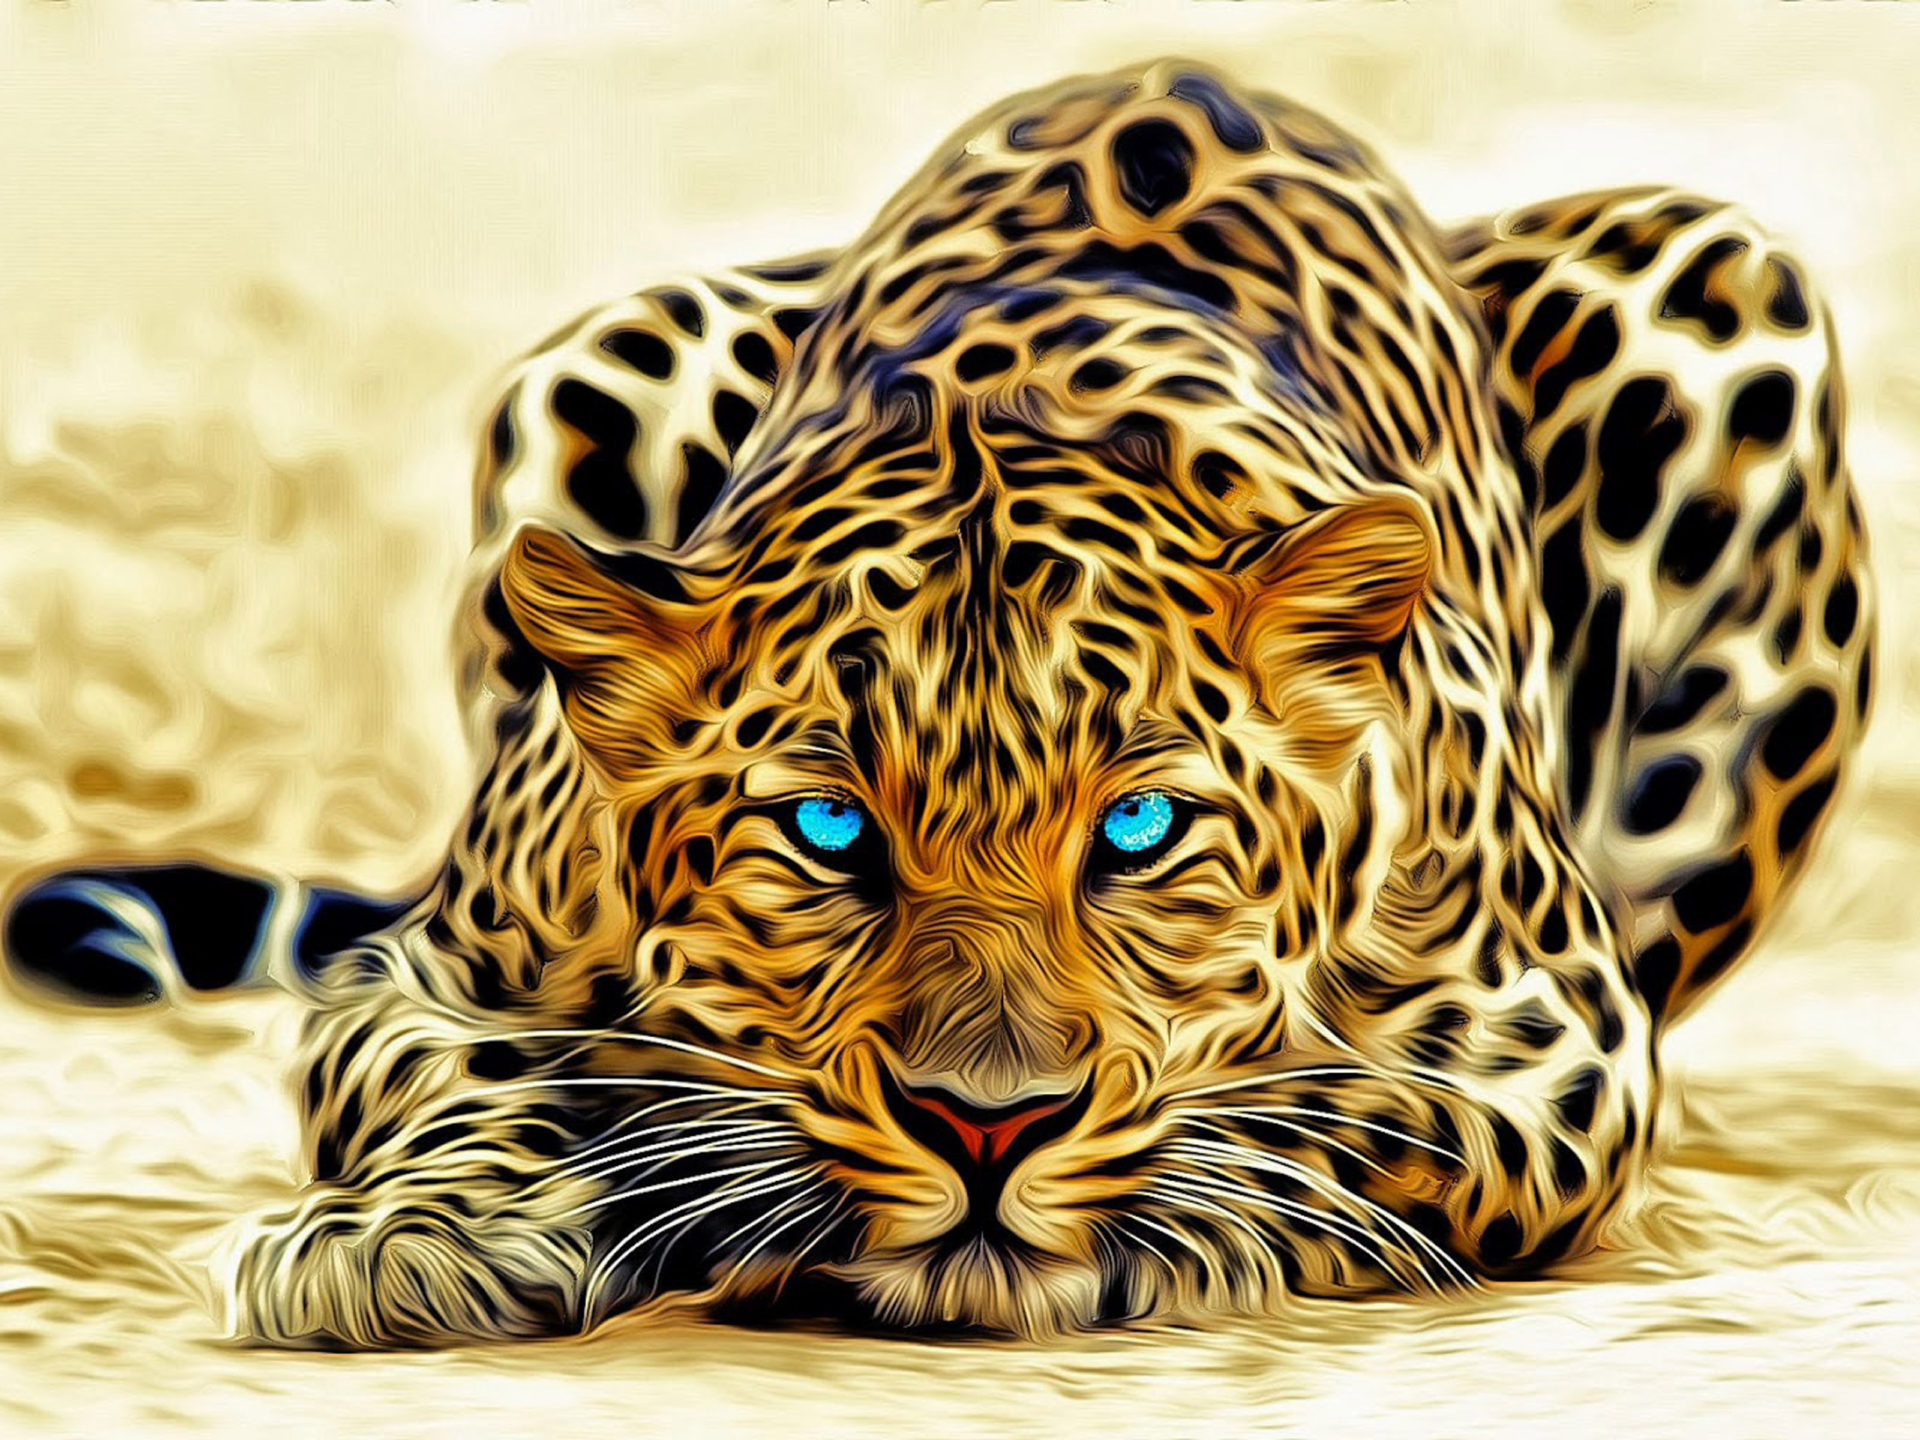 How To Get 3d Wallpaper Iphone Leopard Art Abstract 3d Wallpaper Hd 3840x2400